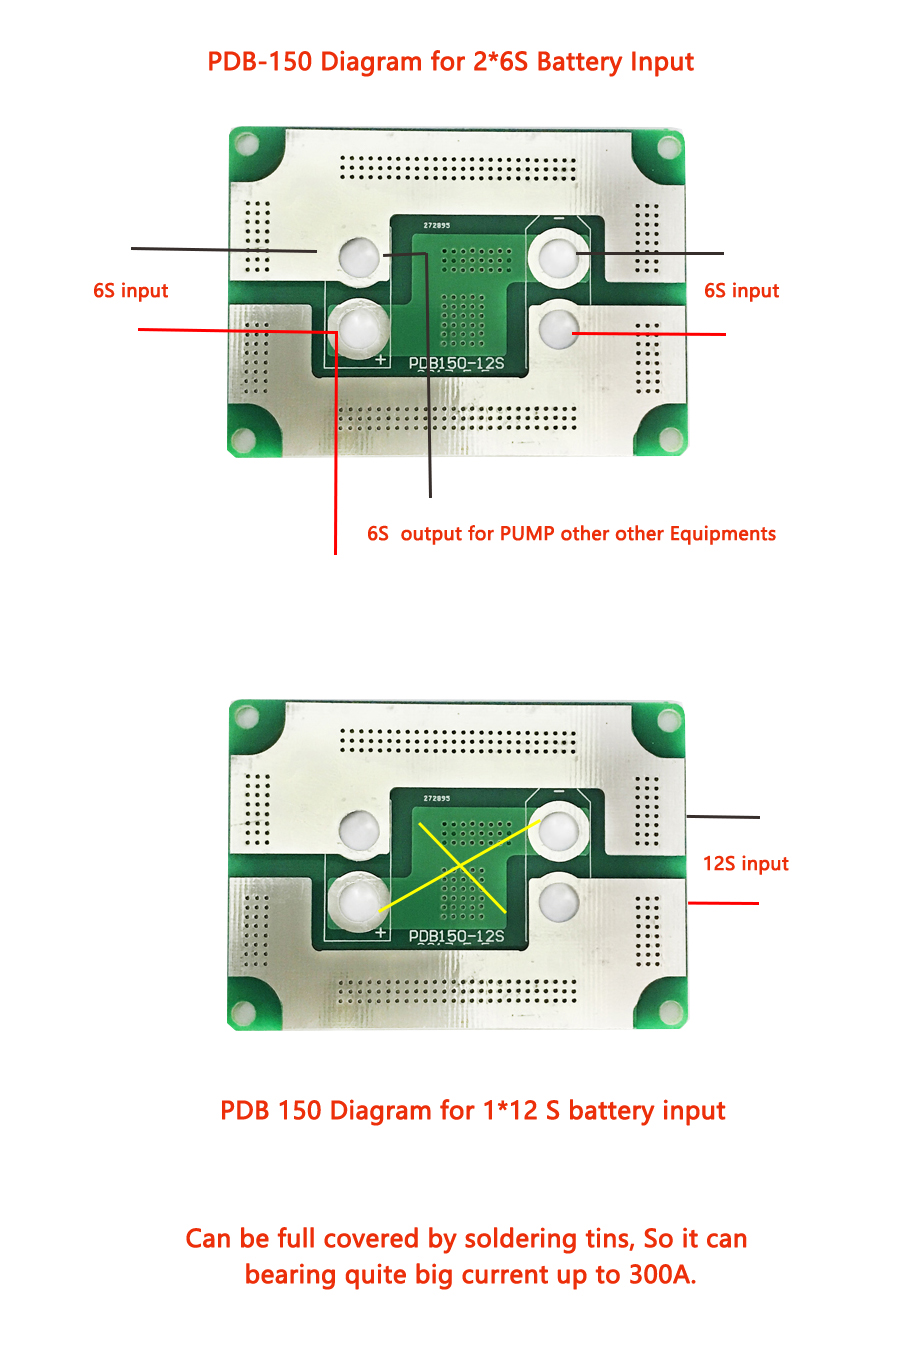 PDB-150 Drone Power Distribution Board Diagram